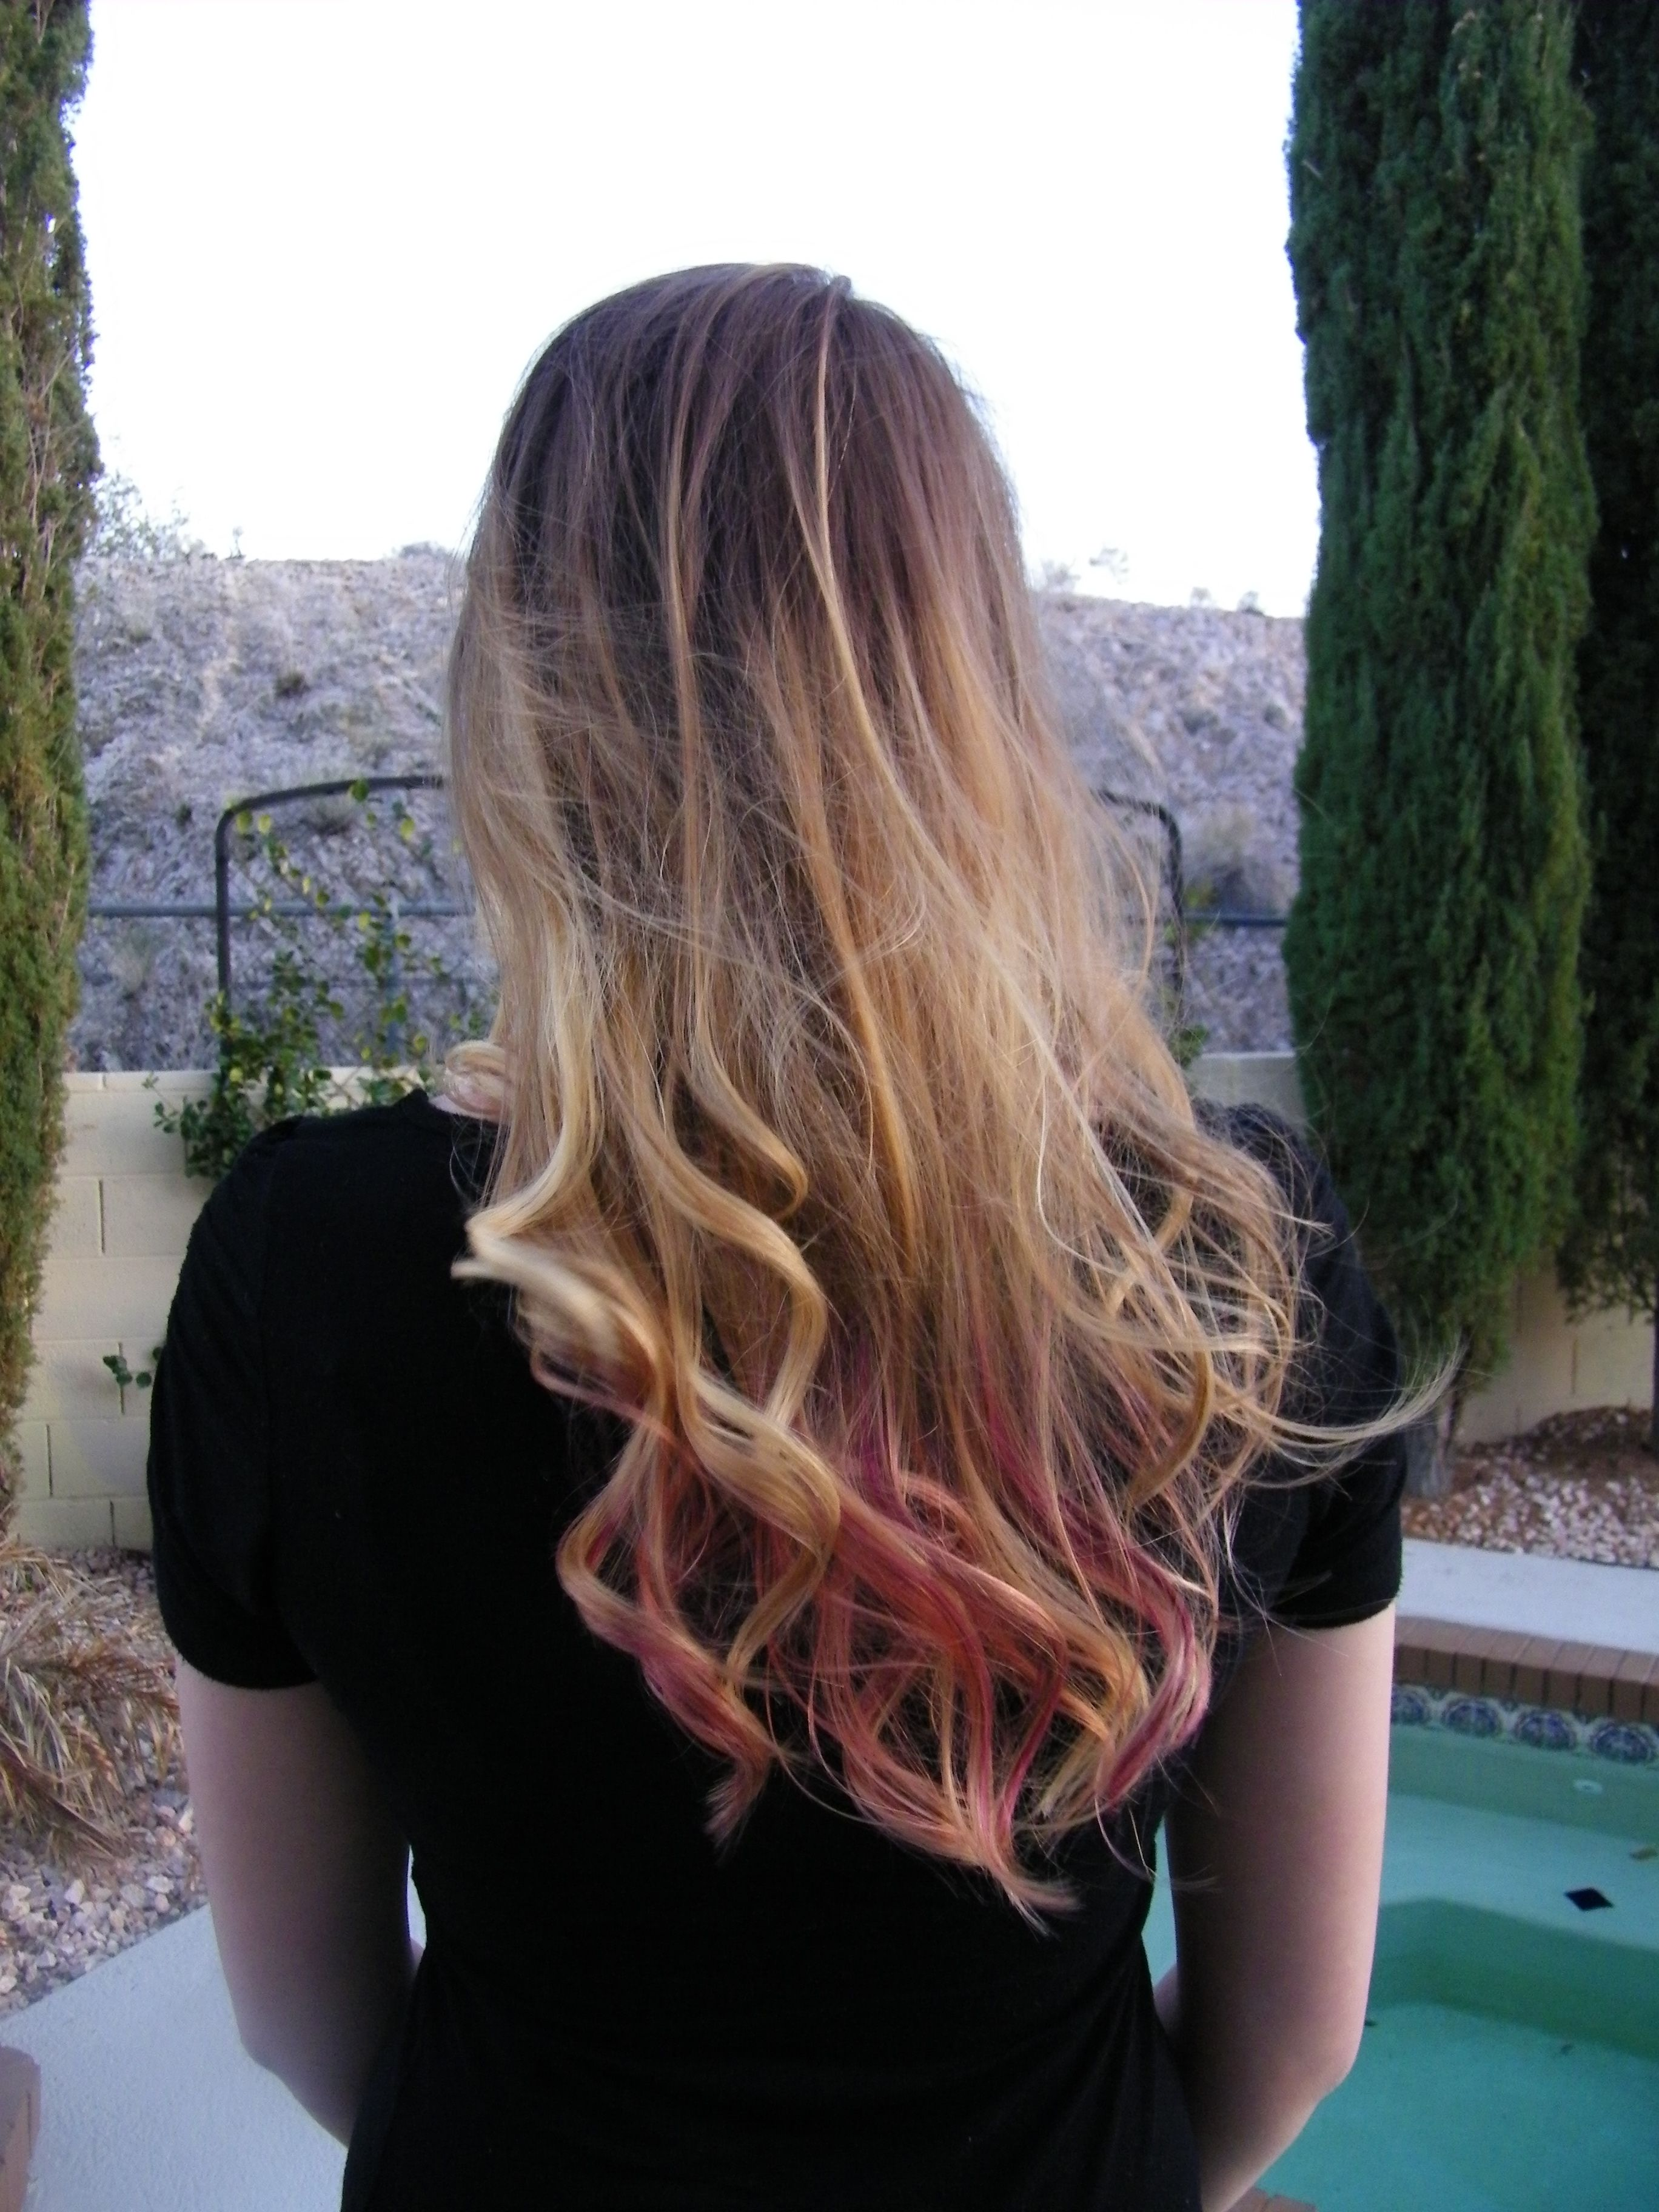 Well, I did it! Ombre hair with dip dye :) brown to blonde to pink!